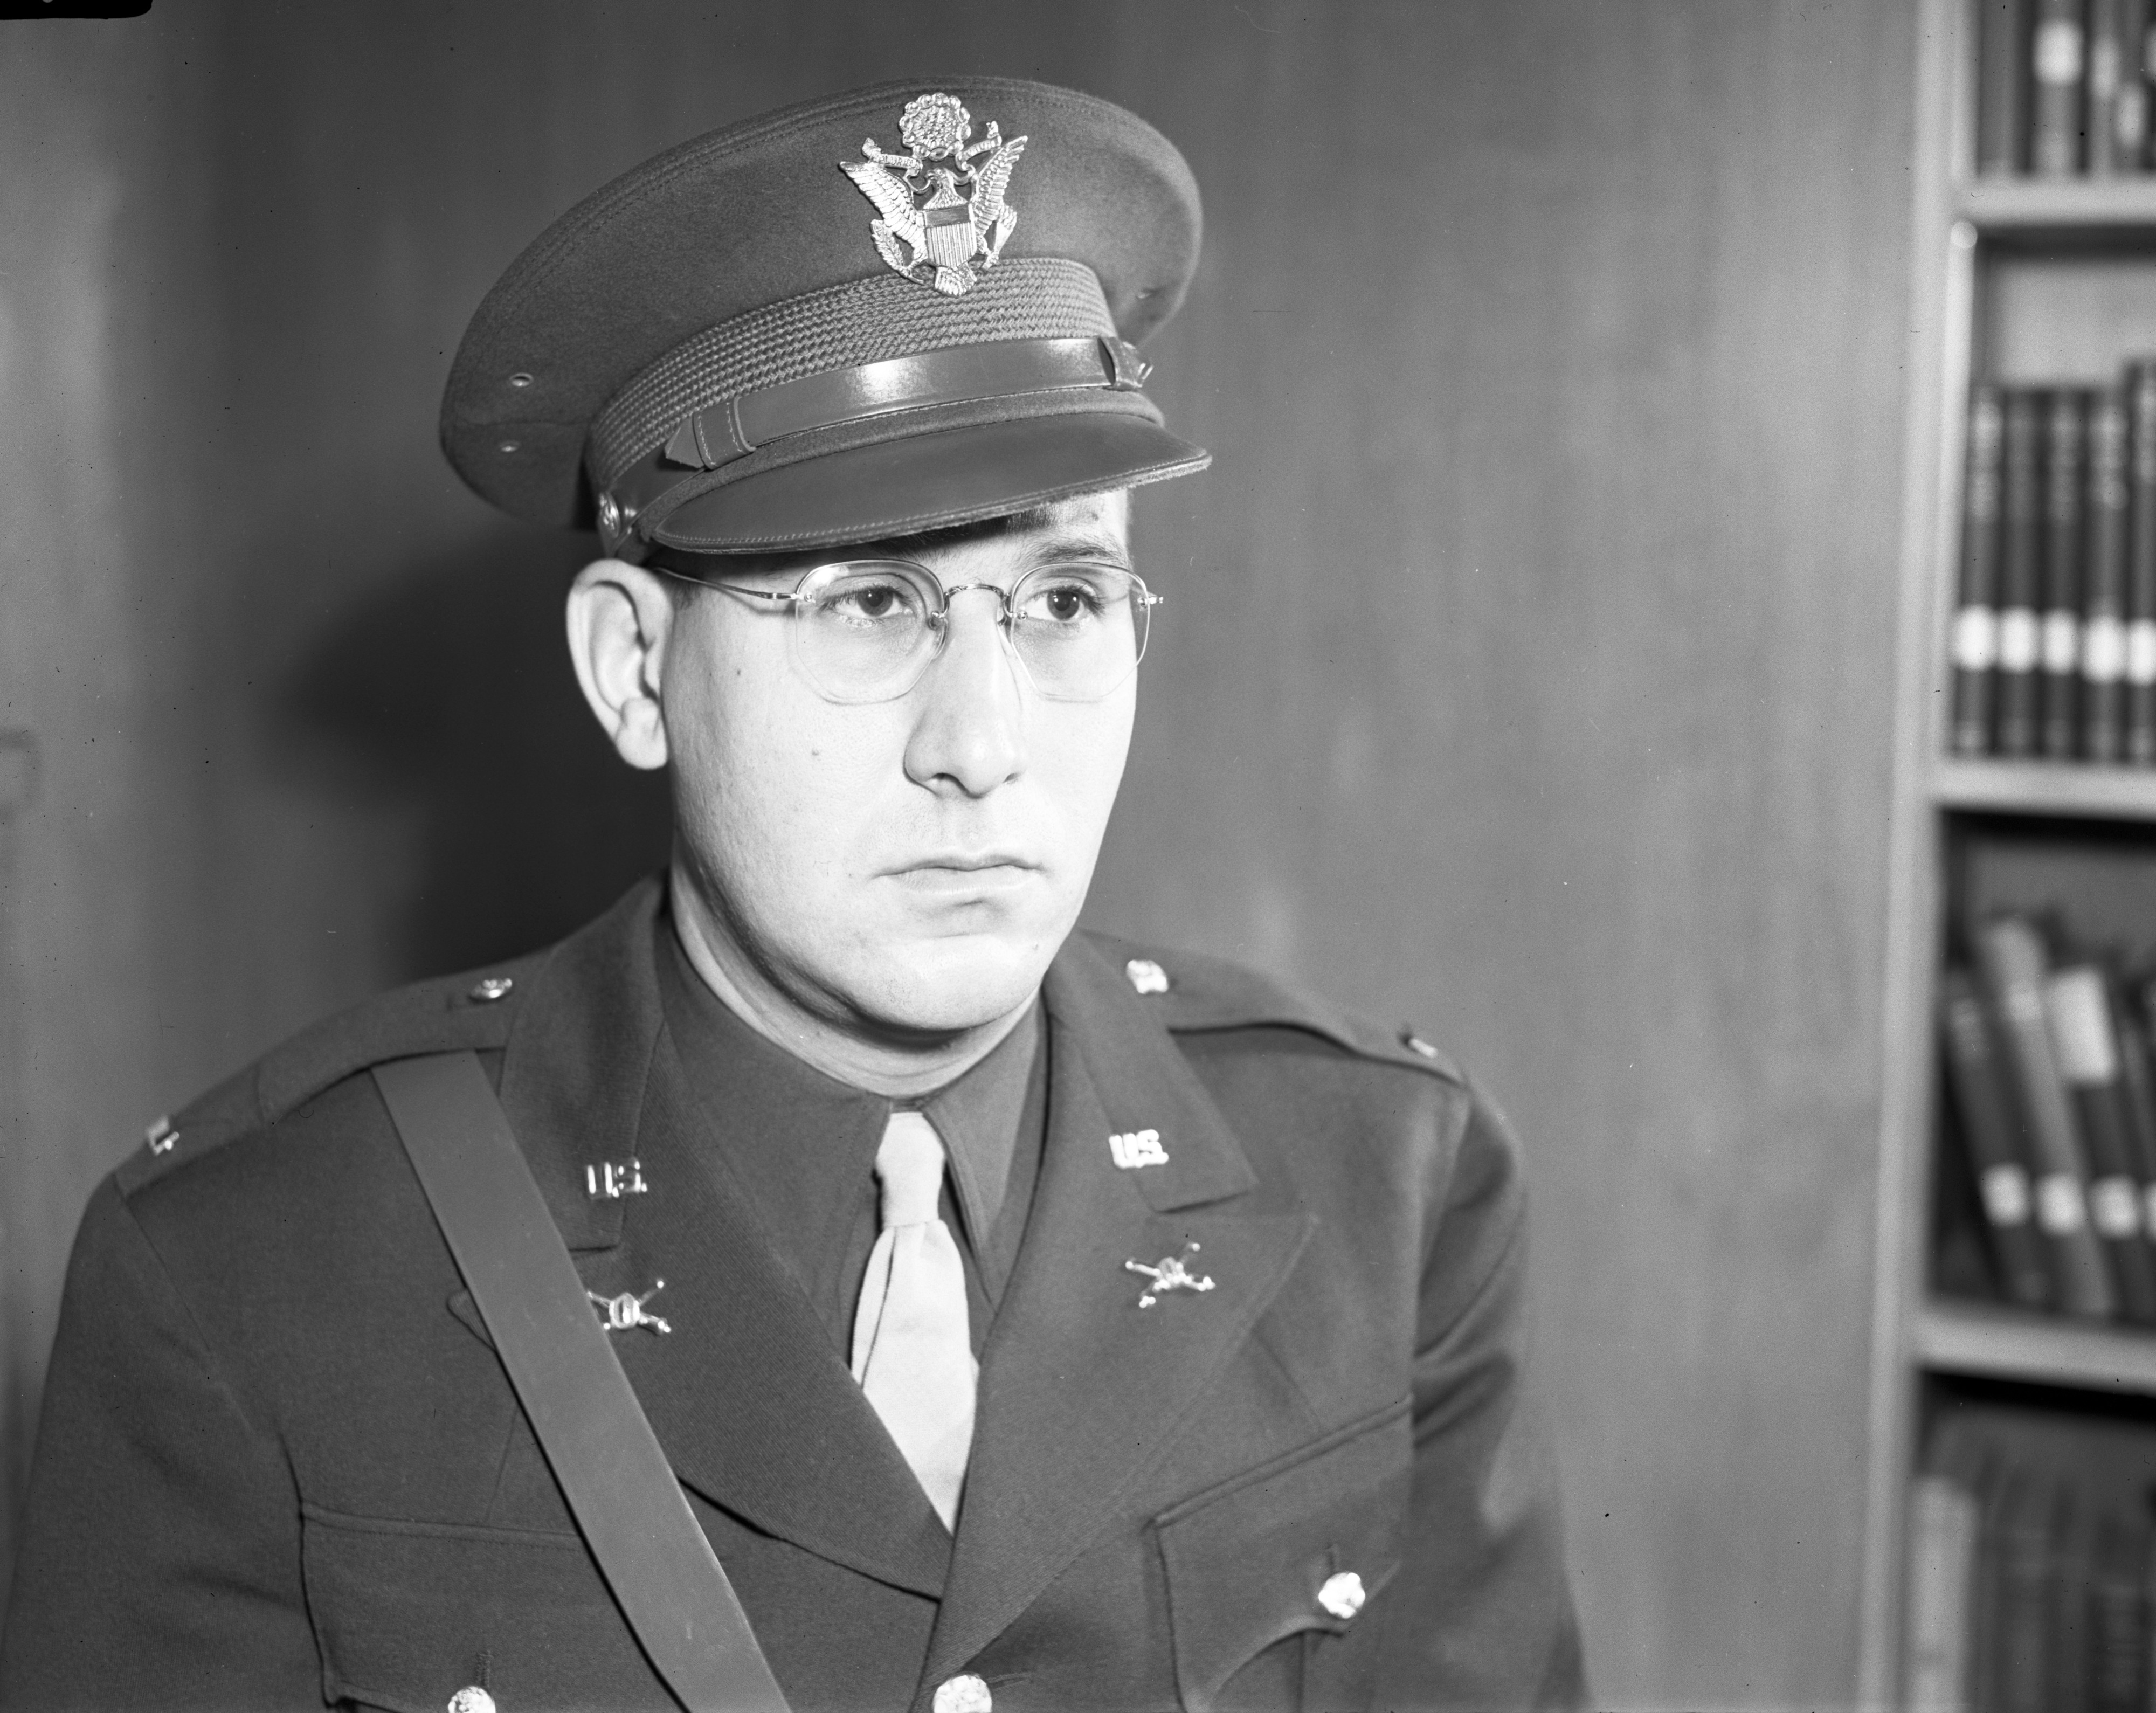 Lieutenant Louis W. Doll, US Army, December 1942 image